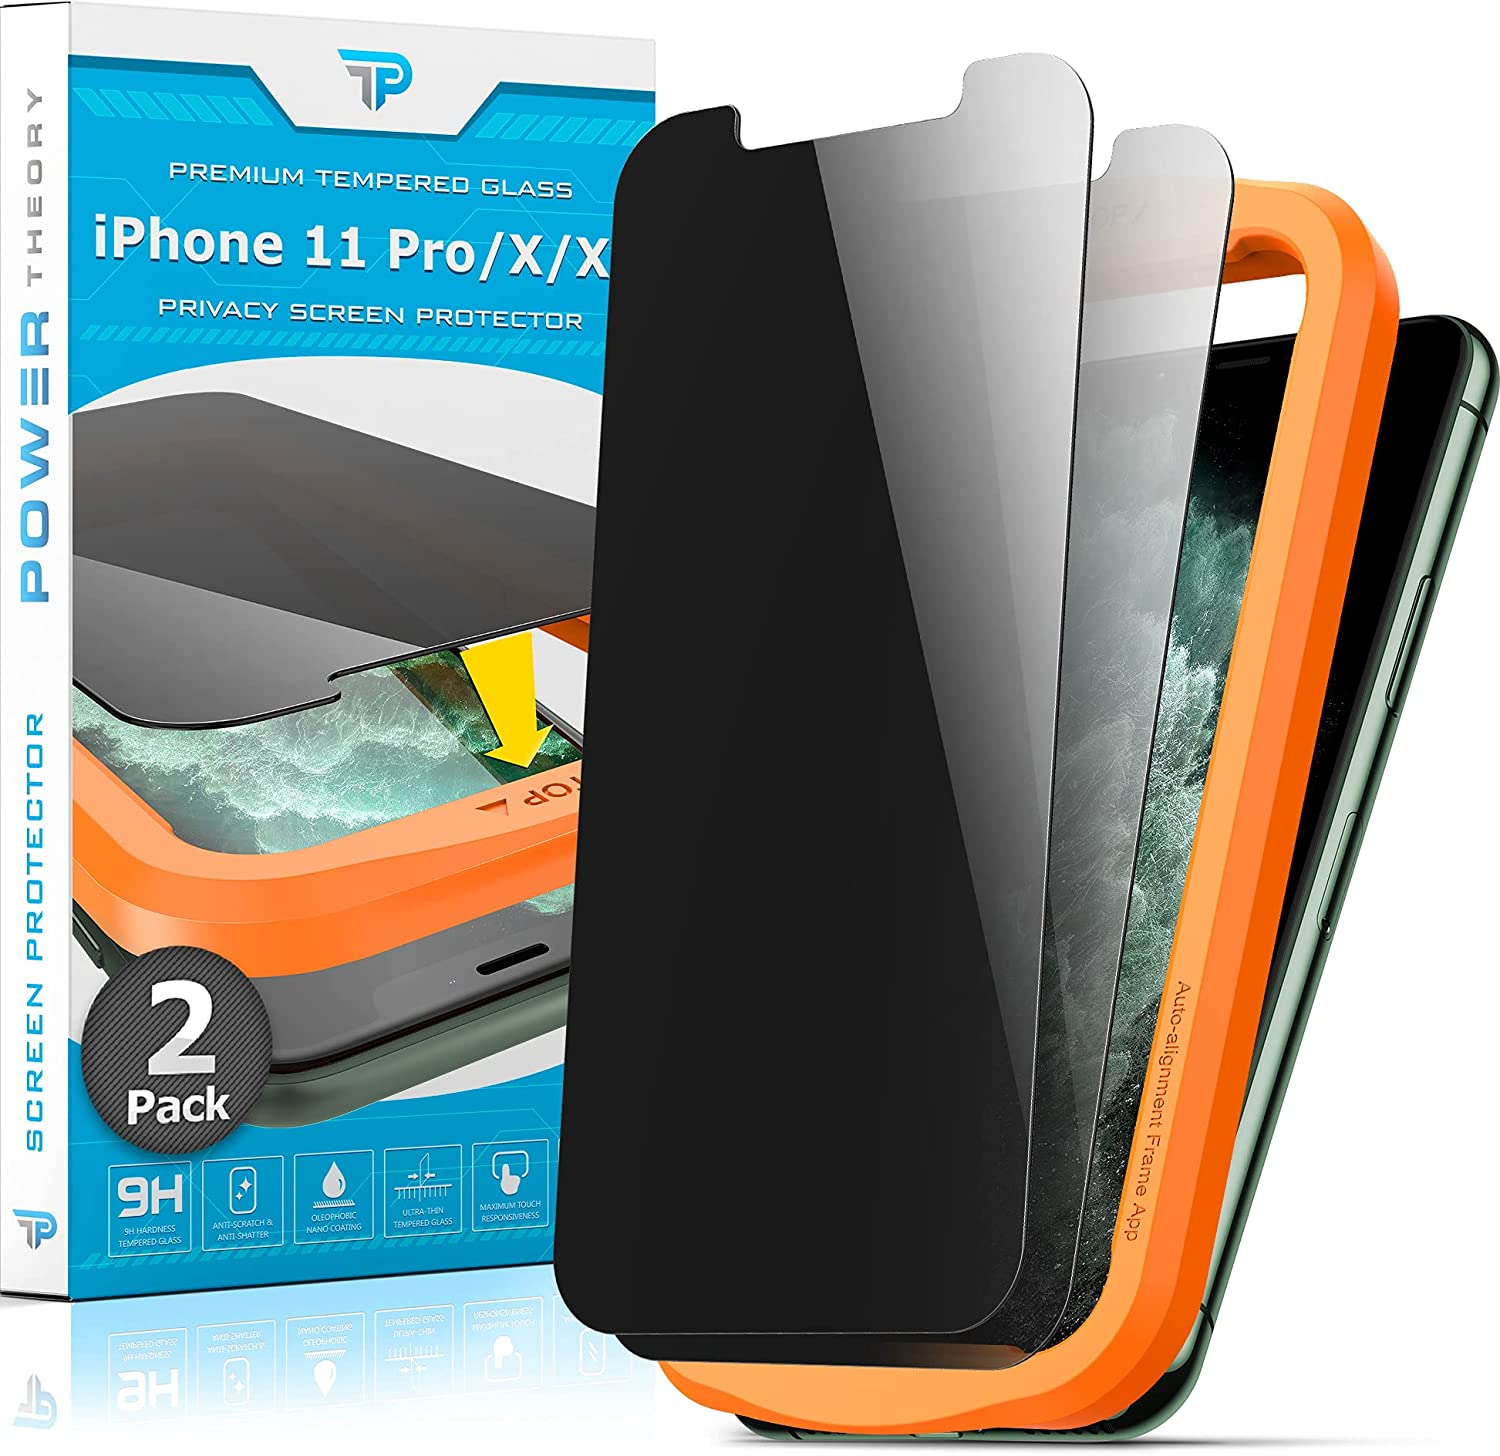 Power Theory Privacy Screen Protector for iPhone 11 Pro/iPhone XS/iPhone X Tempered Glass [2-Pack] Anti-Spy protection with Easy Install Kit [Case Friendly][5.8 Inch]